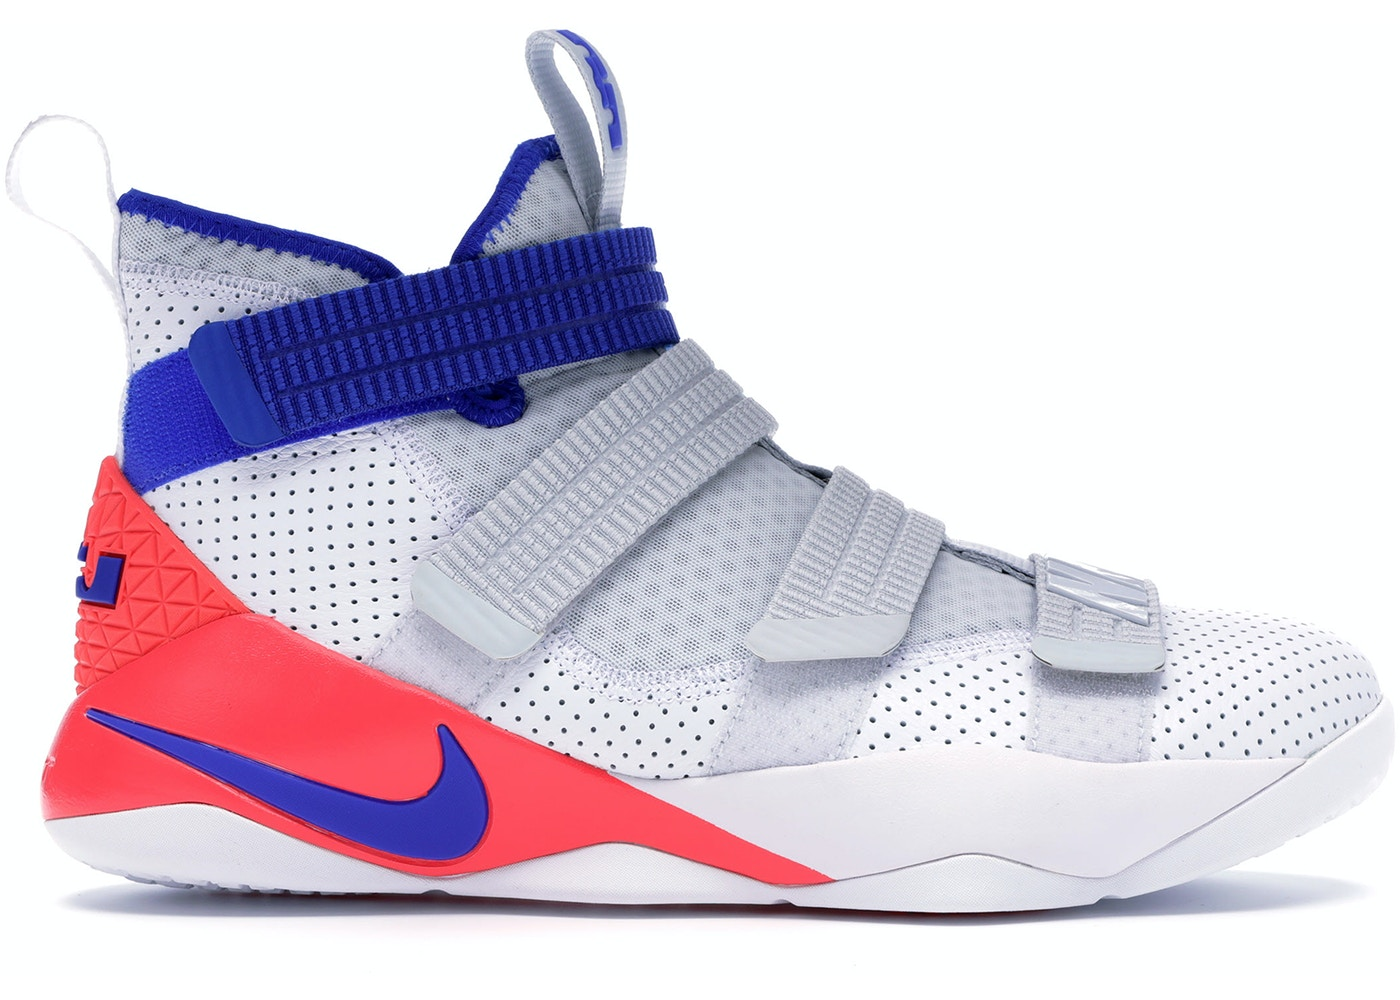 sports shoes 99c7a 18403 LeBron Zoom Soldier 11 Ultramarine